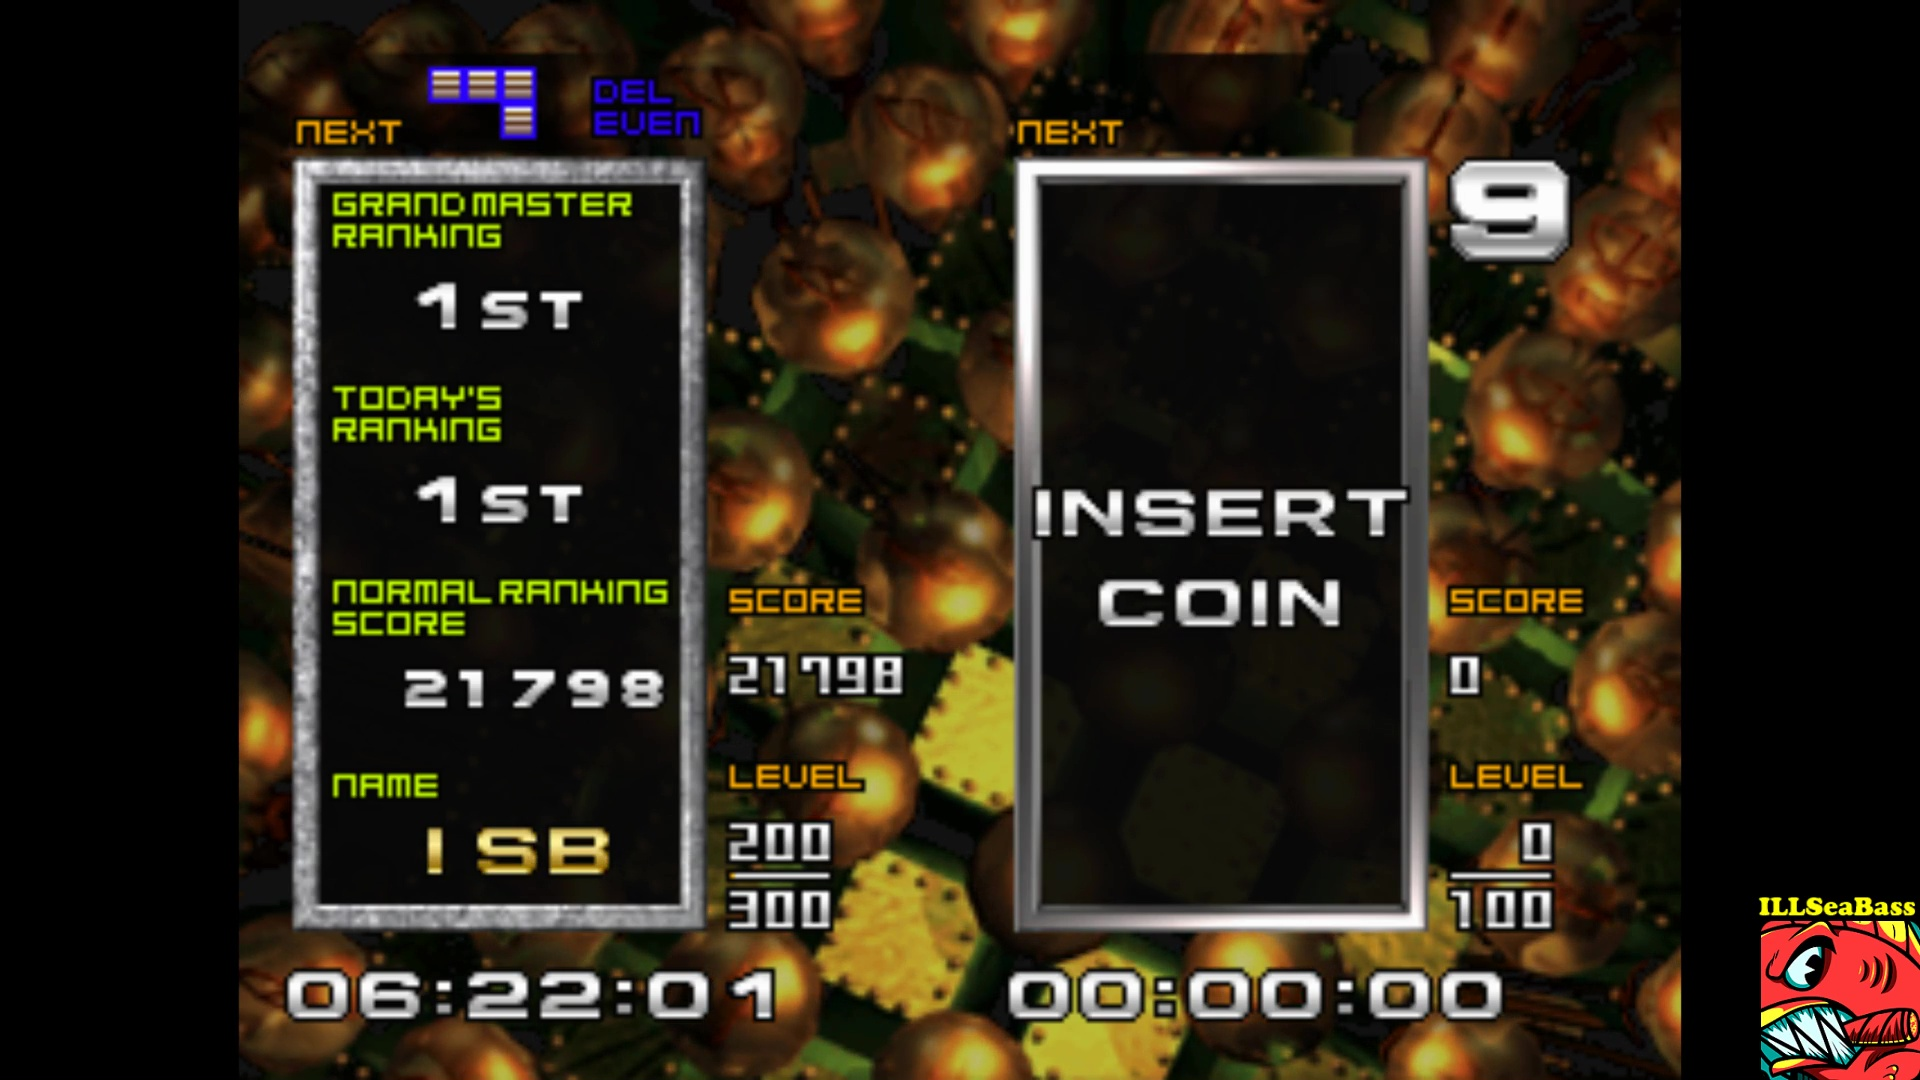 ILLSeaBass: Tetris the Absolute The Grand Master 2 [tgm2] (Arcade Emulated / M.A.M.E.) 21,798 points on 2017-10-01 22:43:12